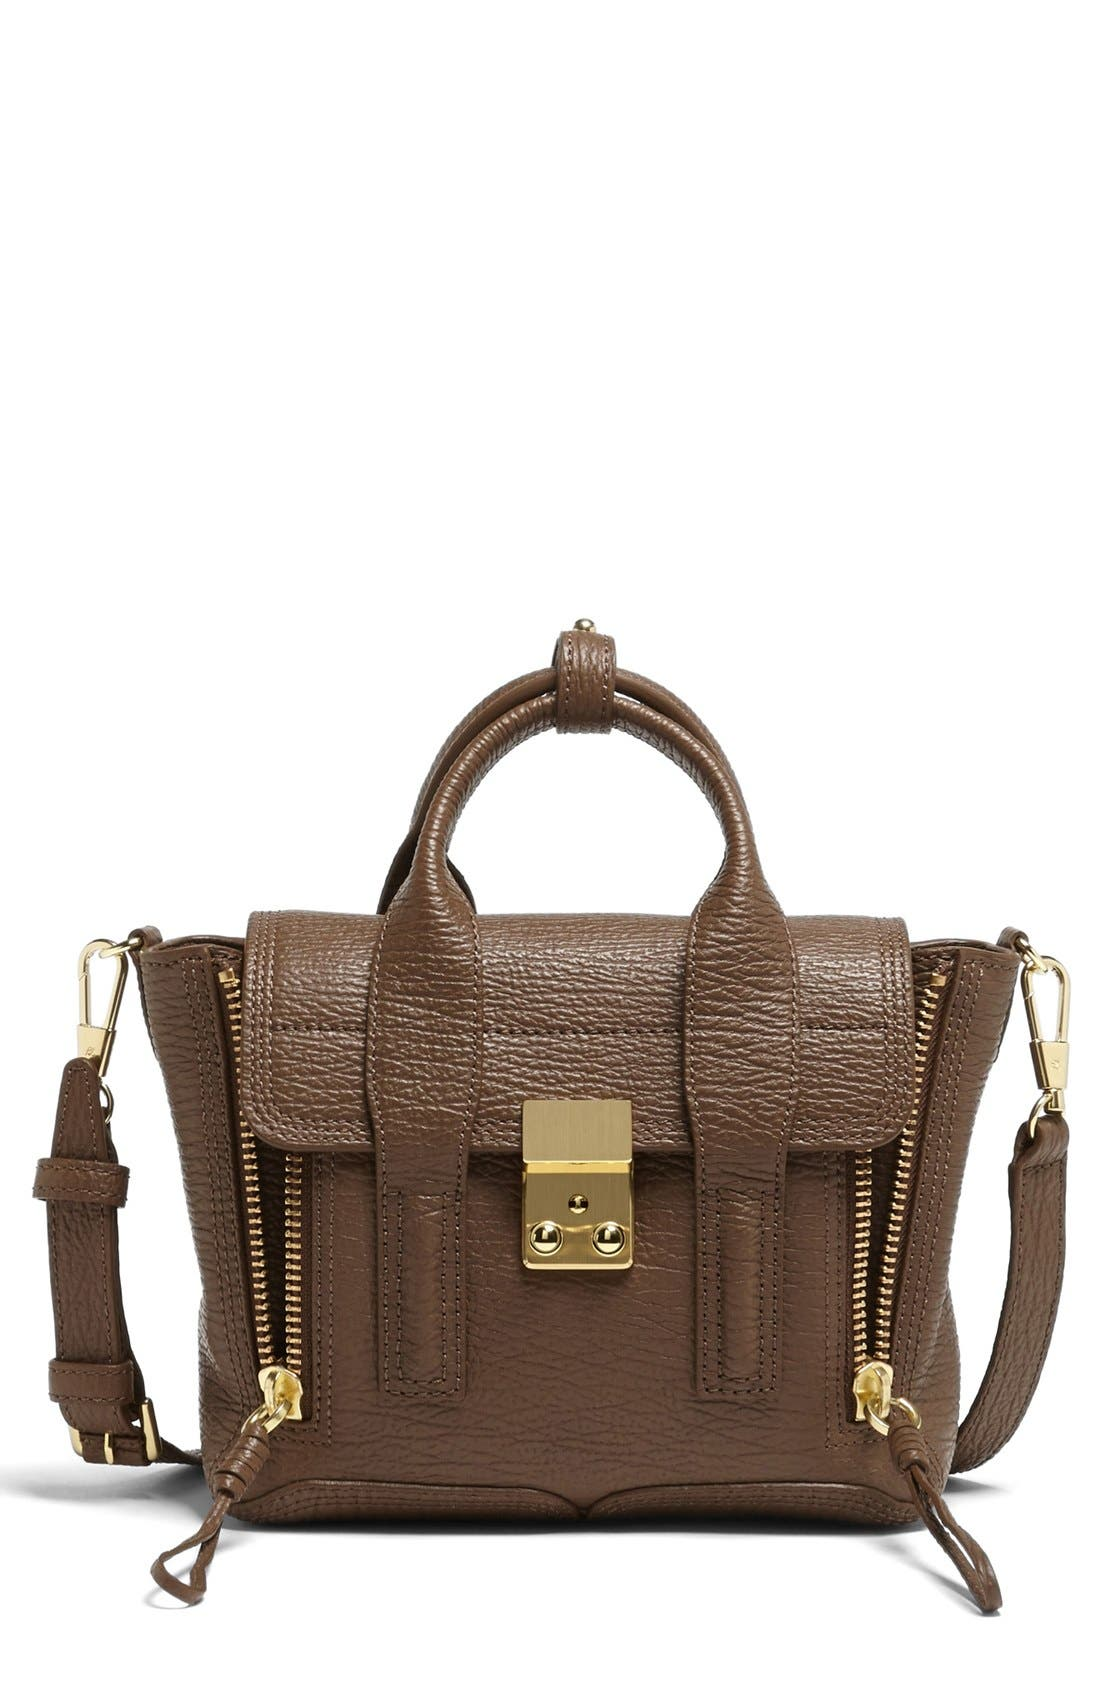 'Mini Pashli' Leather Satchel,                             Main thumbnail 1, color,                             Taupe